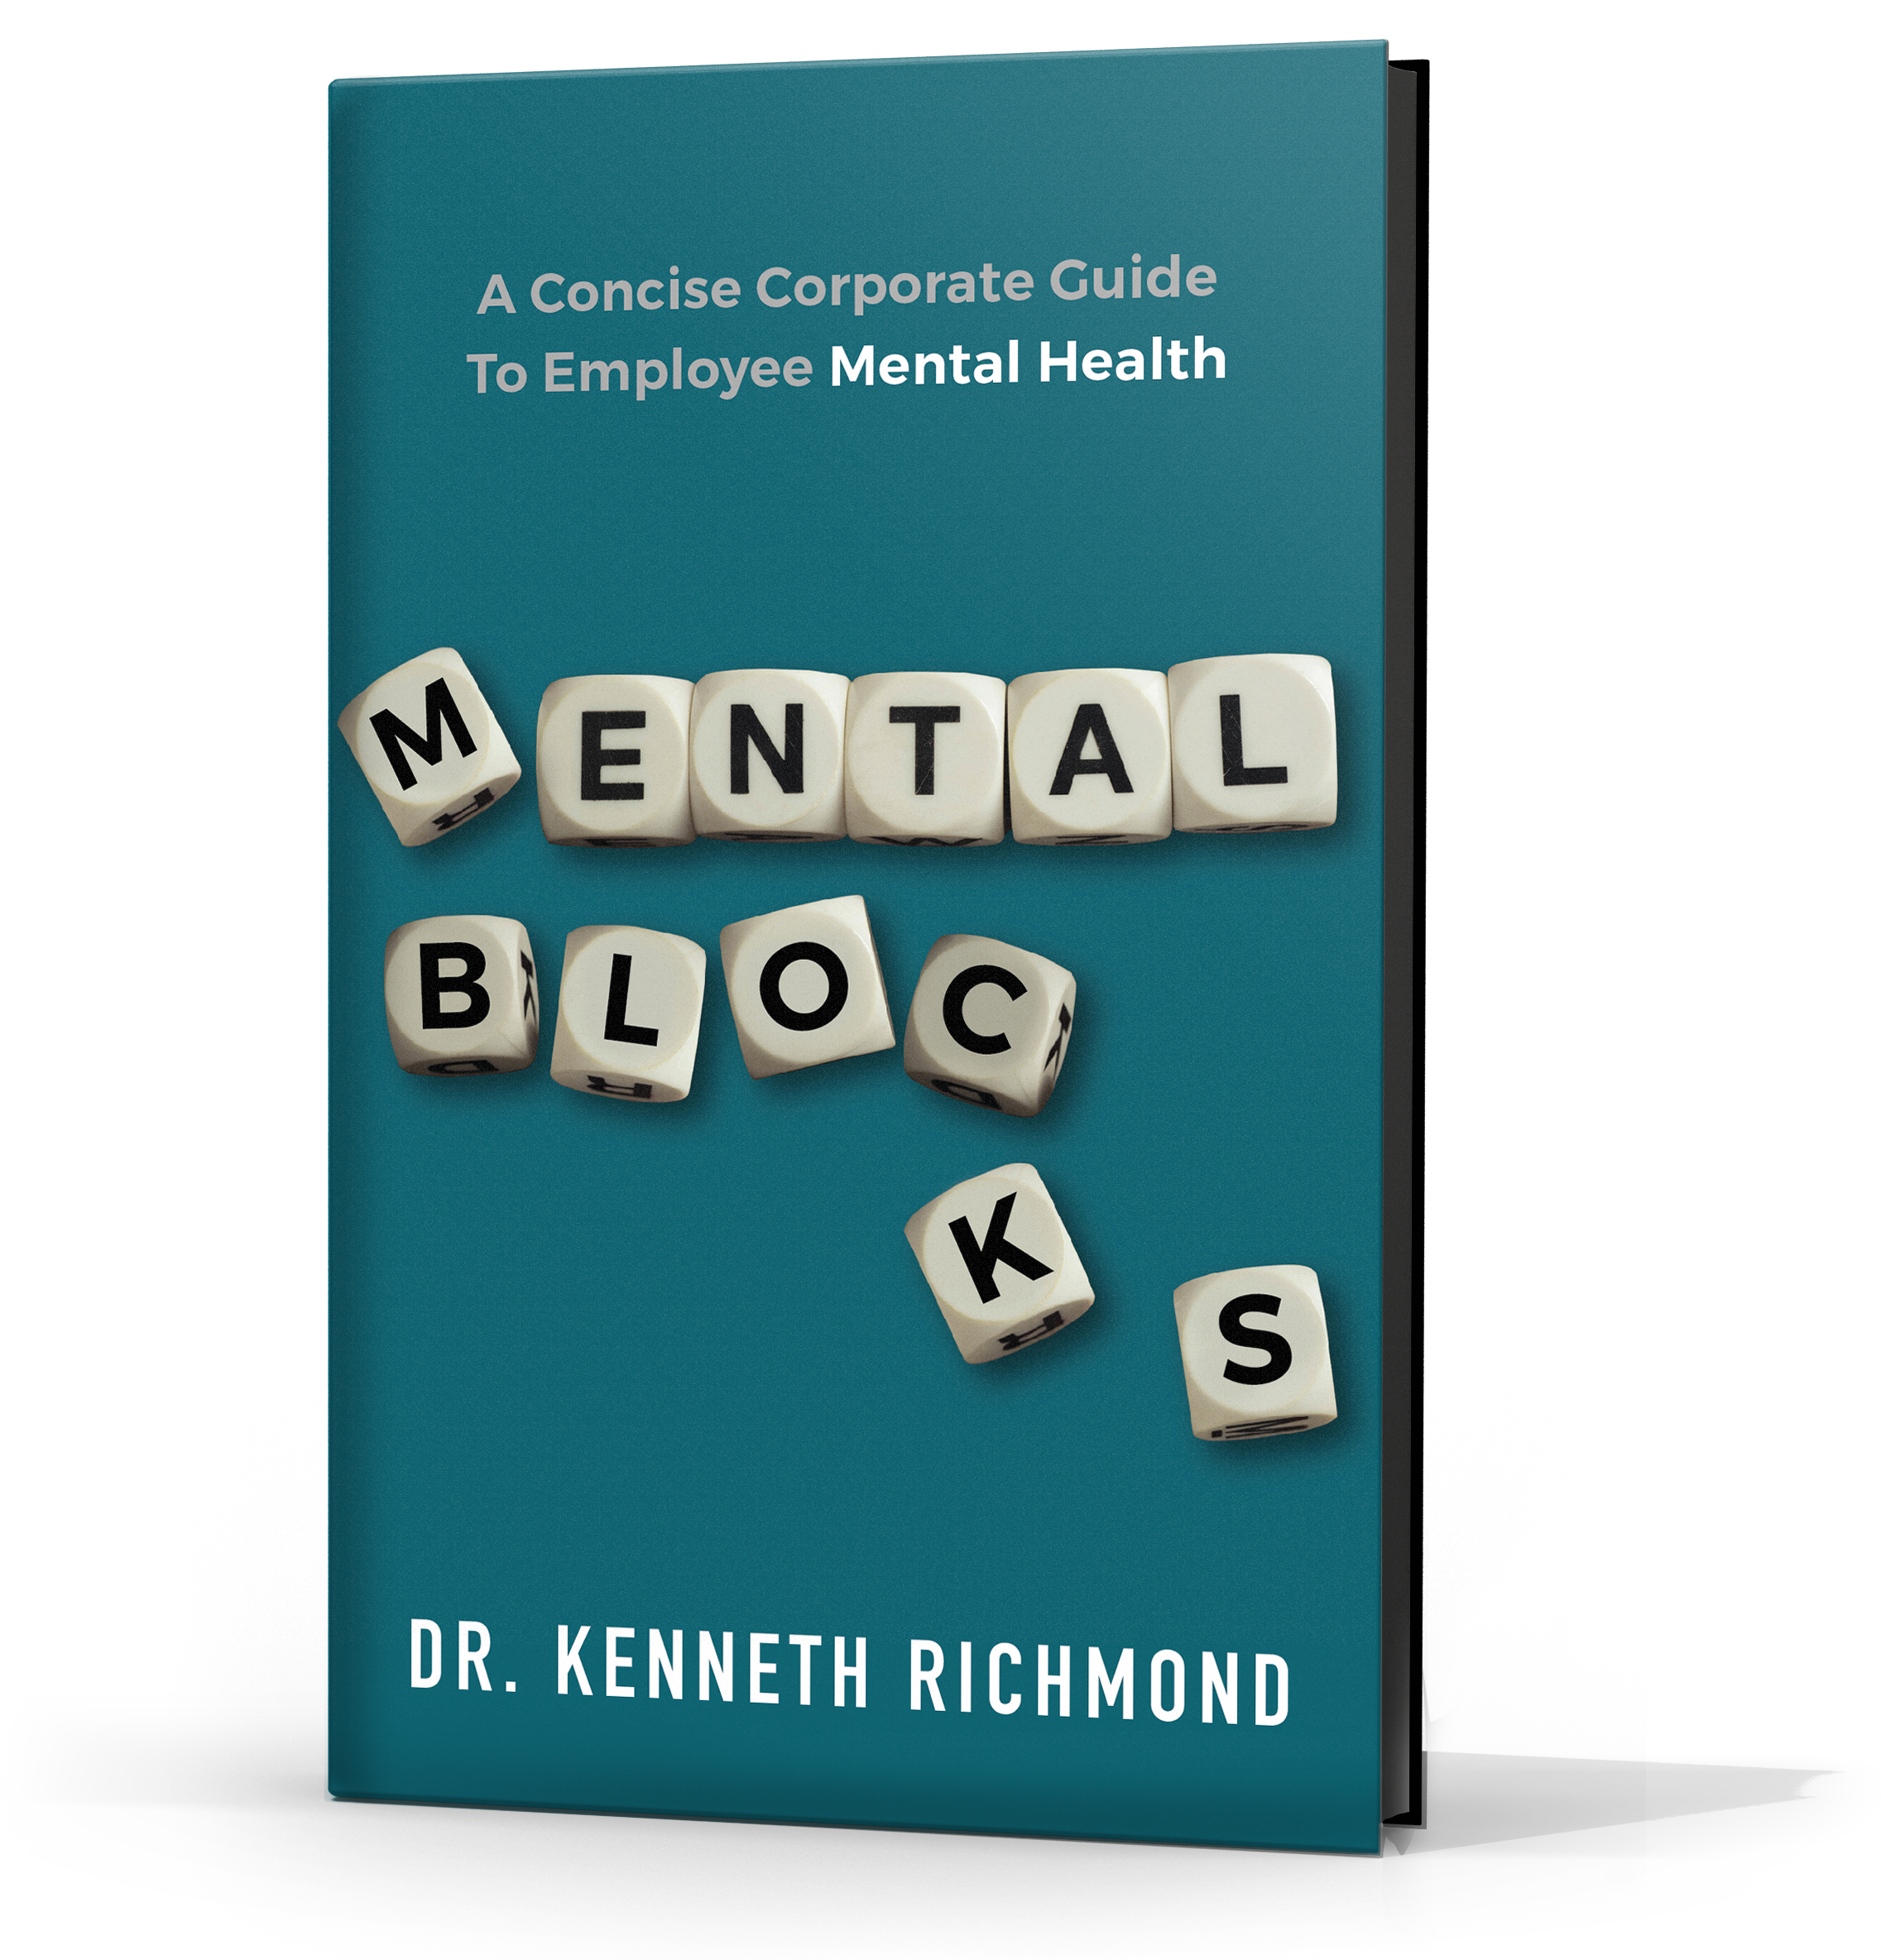 Psychiatrist and Bestselling Author Releases Informative Guide for Improving Mental Health in the Workplace